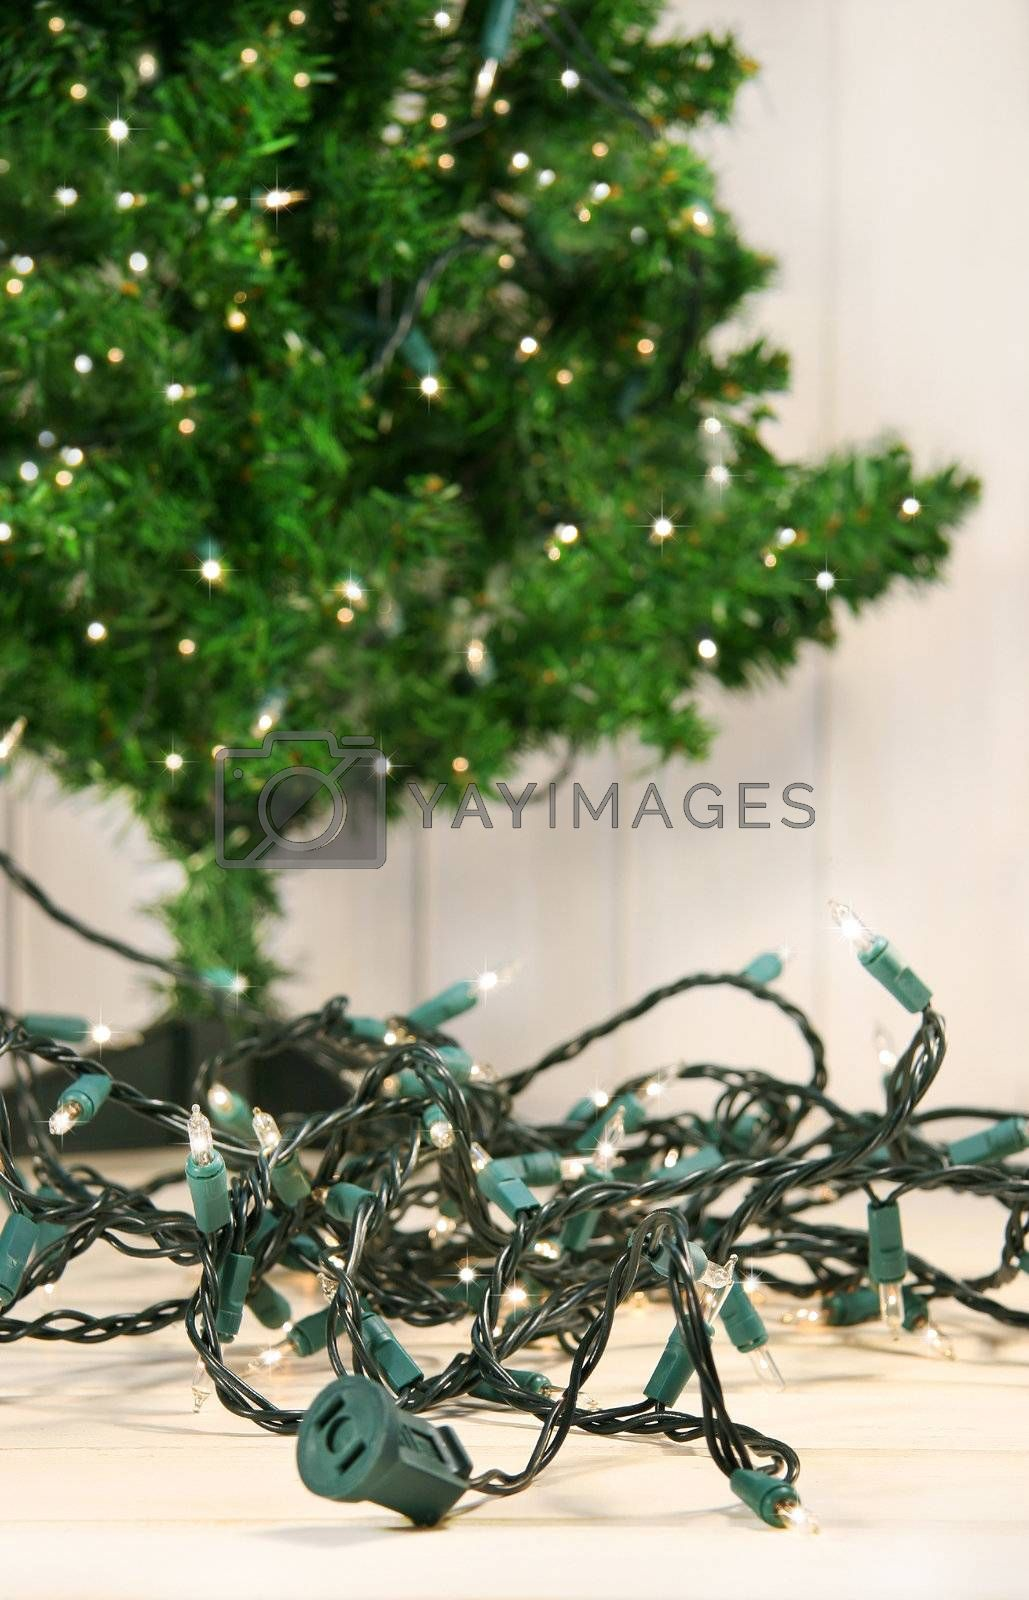 Putting up the tree lights for Christmas